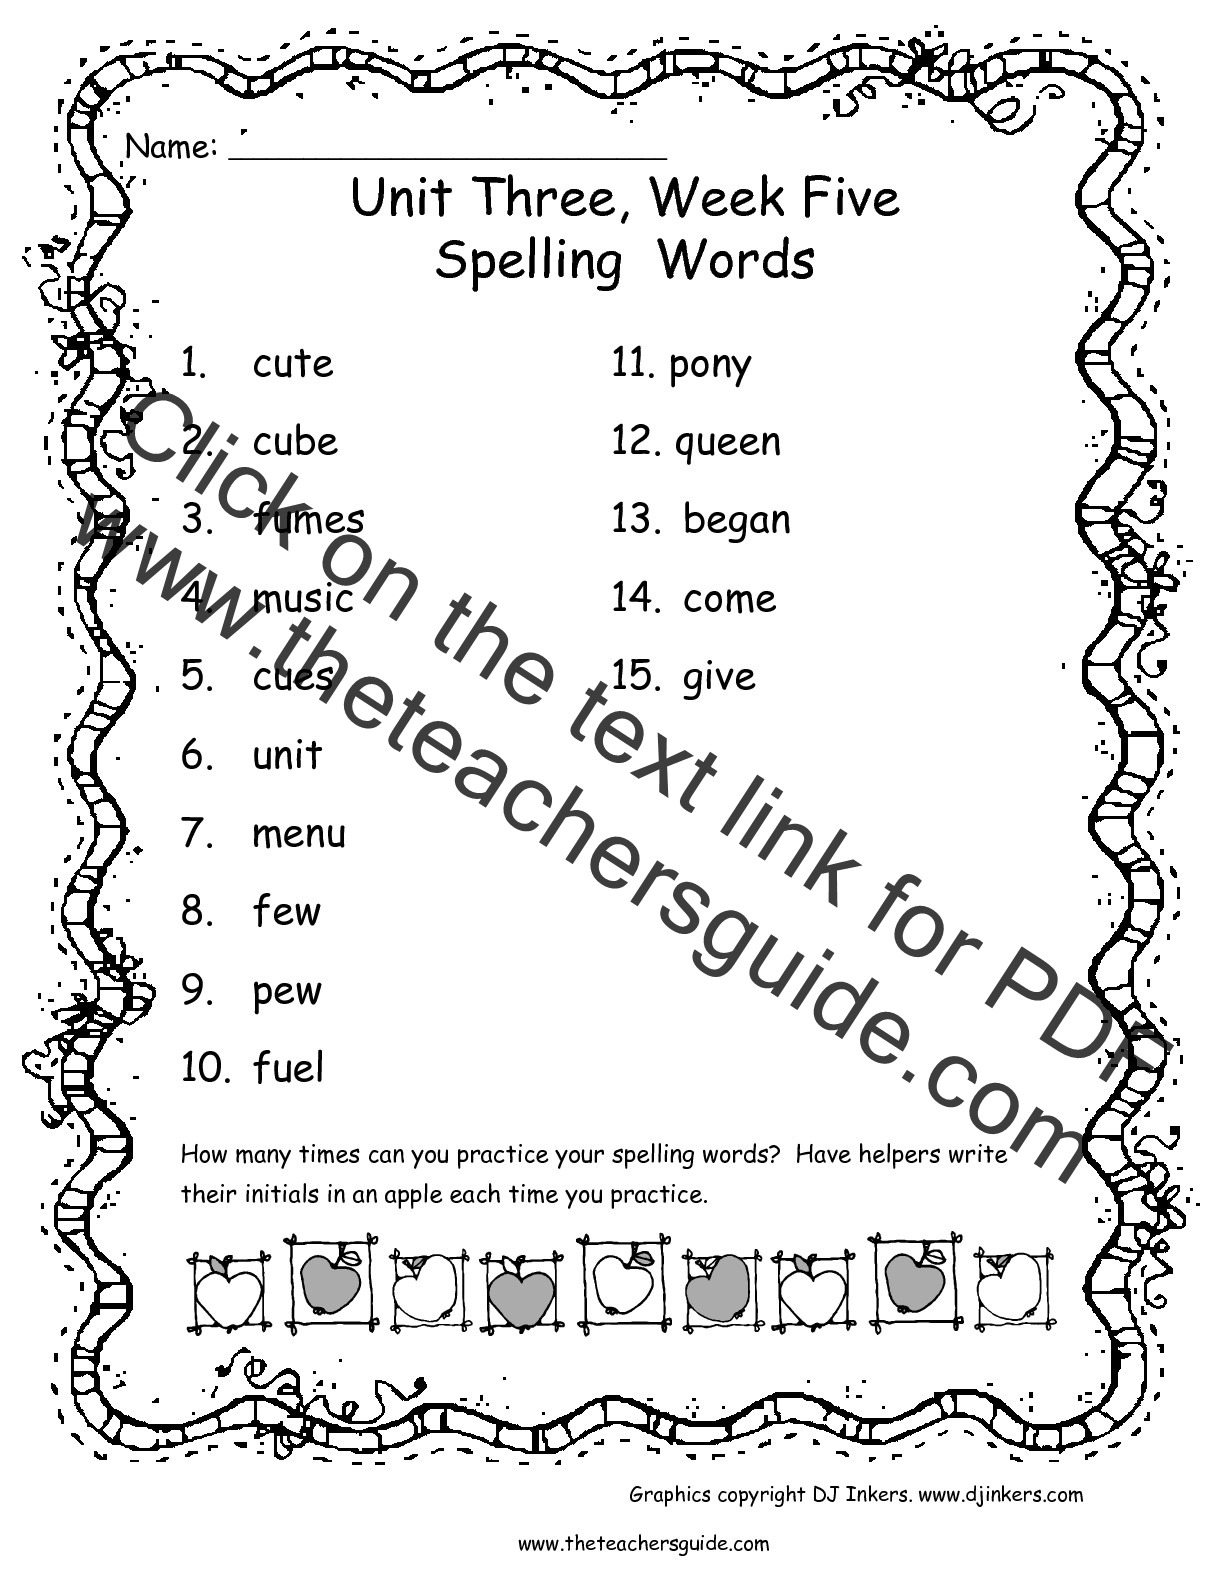 Uncategorized 2nd Grade Spelling Worksheets worksheet second grade spelling words wosenly free wonders unit three week five printouts words